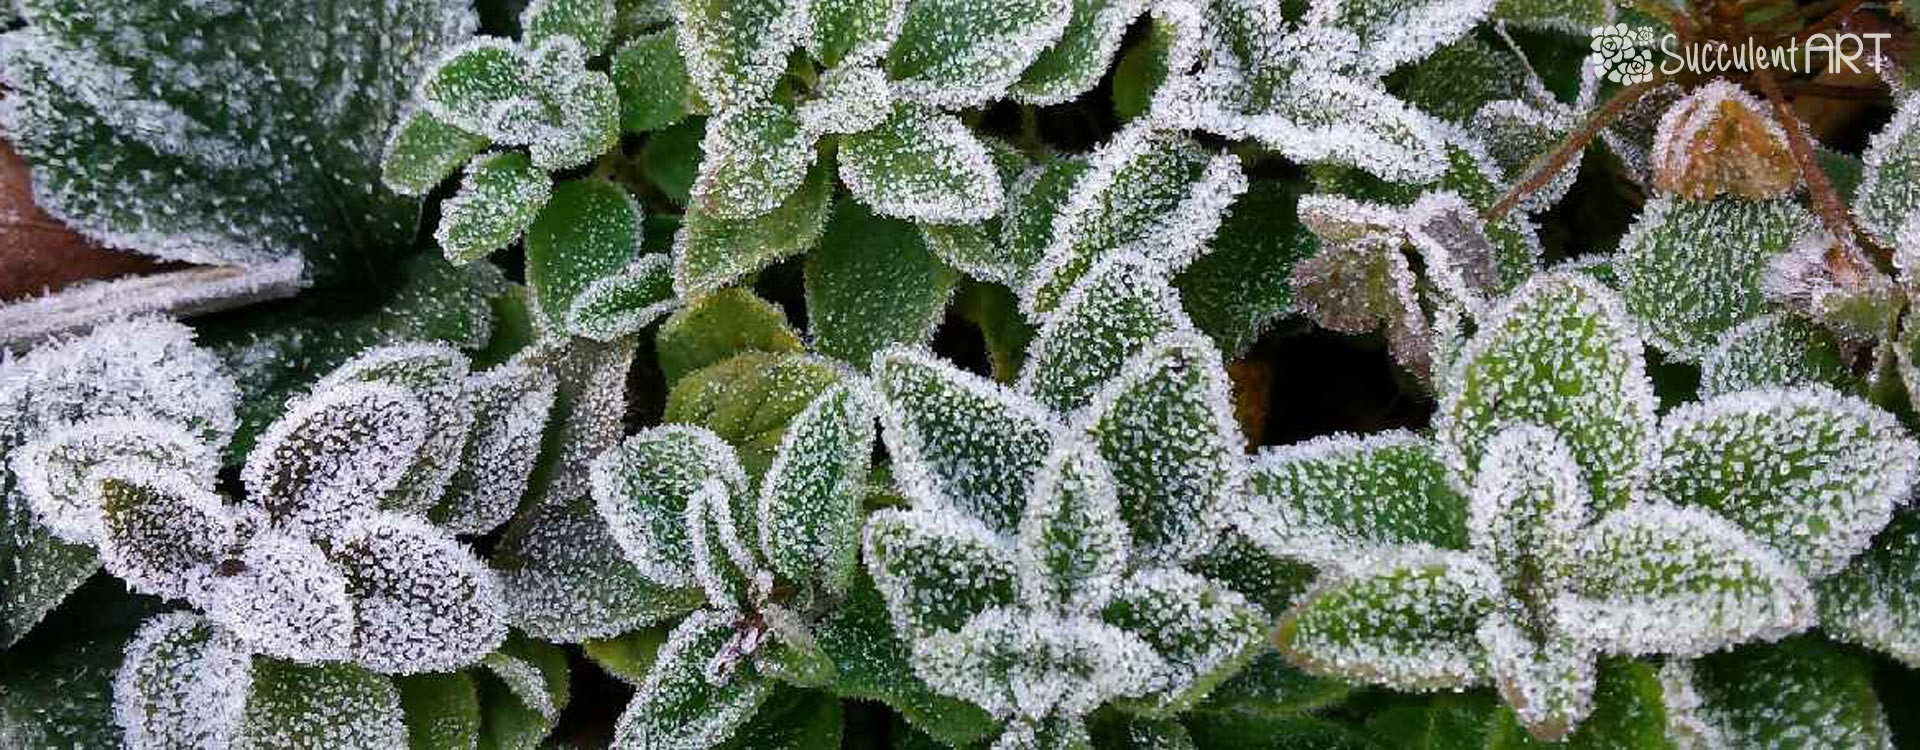 Succulents and Frosts